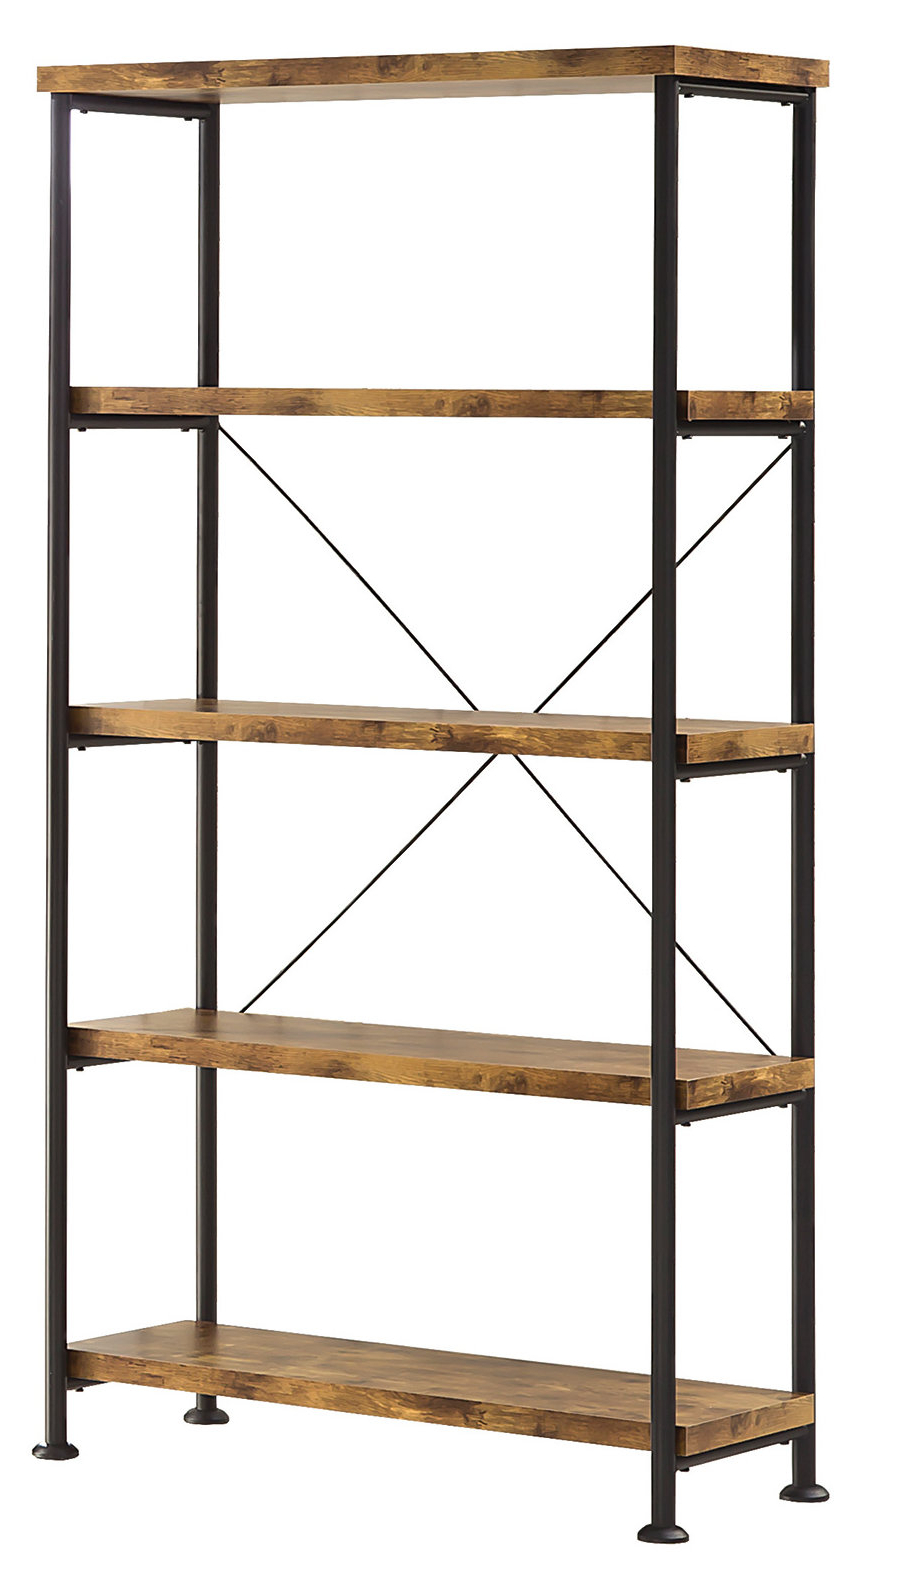 Epineux Etagere Bookcase Pertaining To Famous Epineux Etagere Bookcases (View 4 of 20)